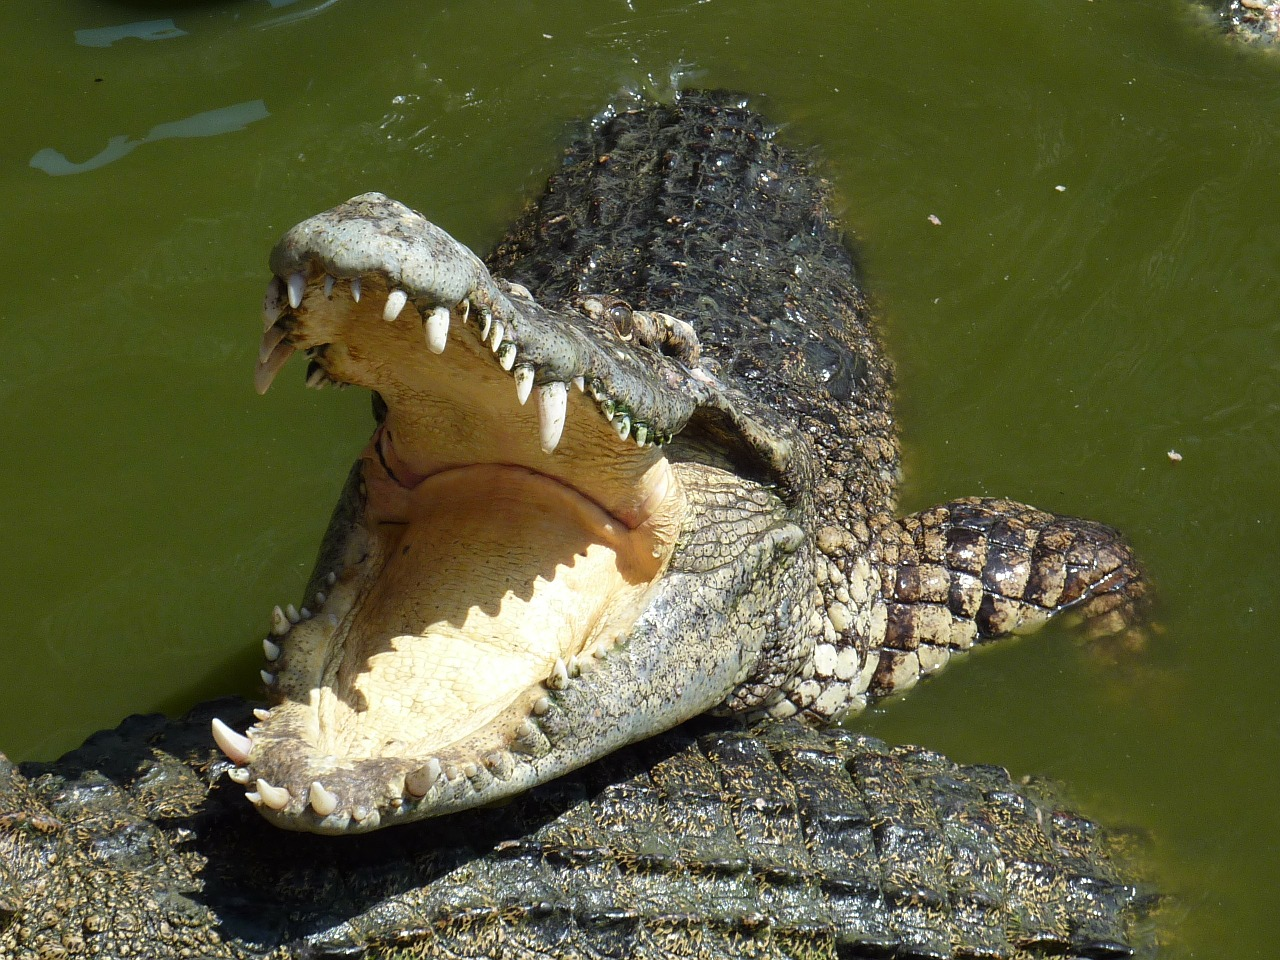 Do Crocodiles Have Tongues